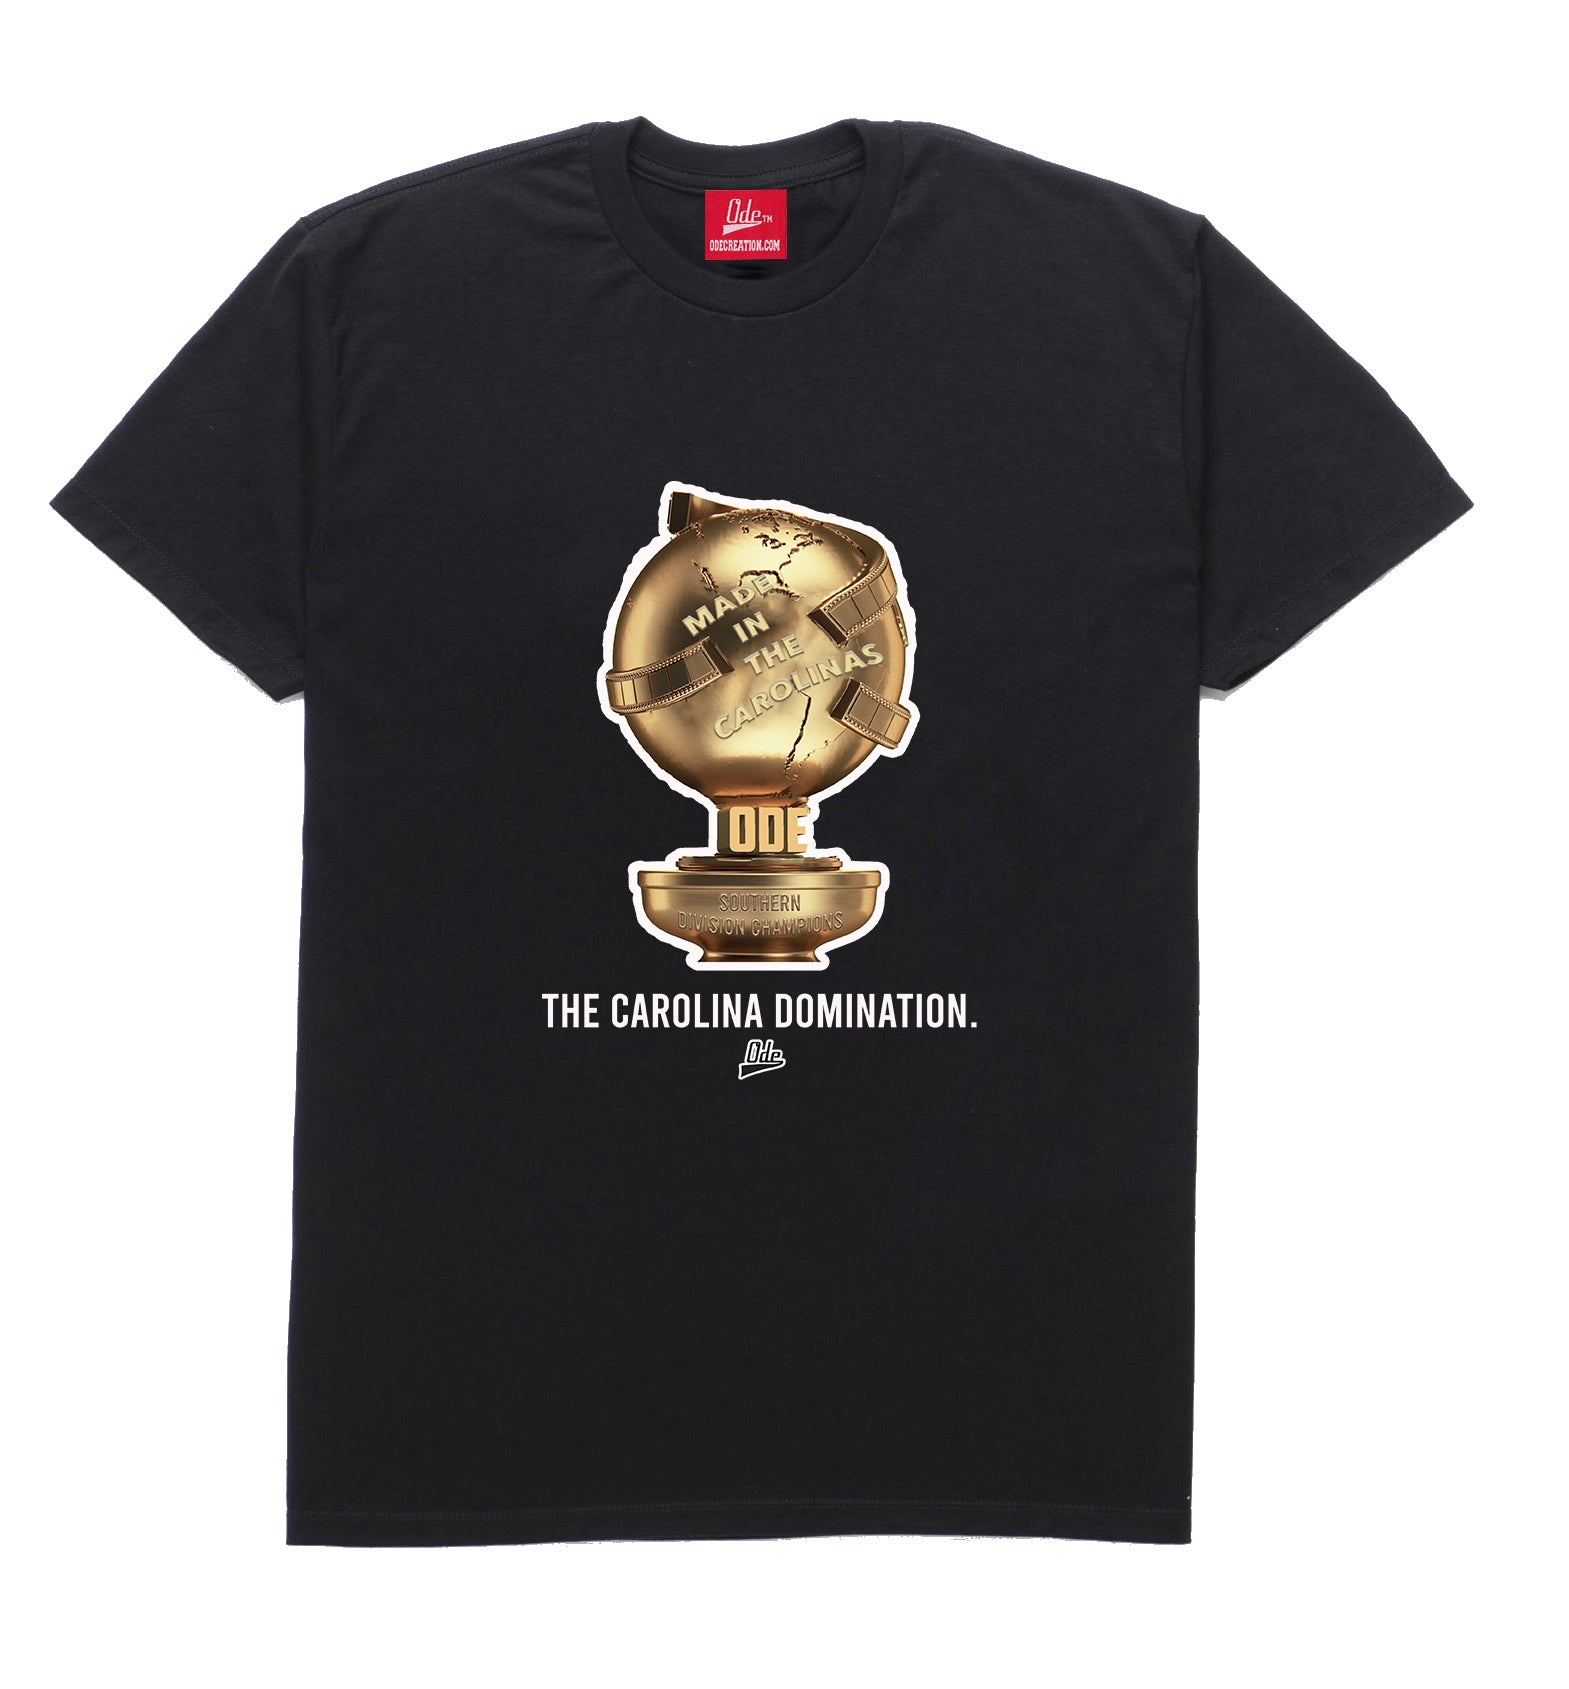 The Carolina Domination T-shirt Black